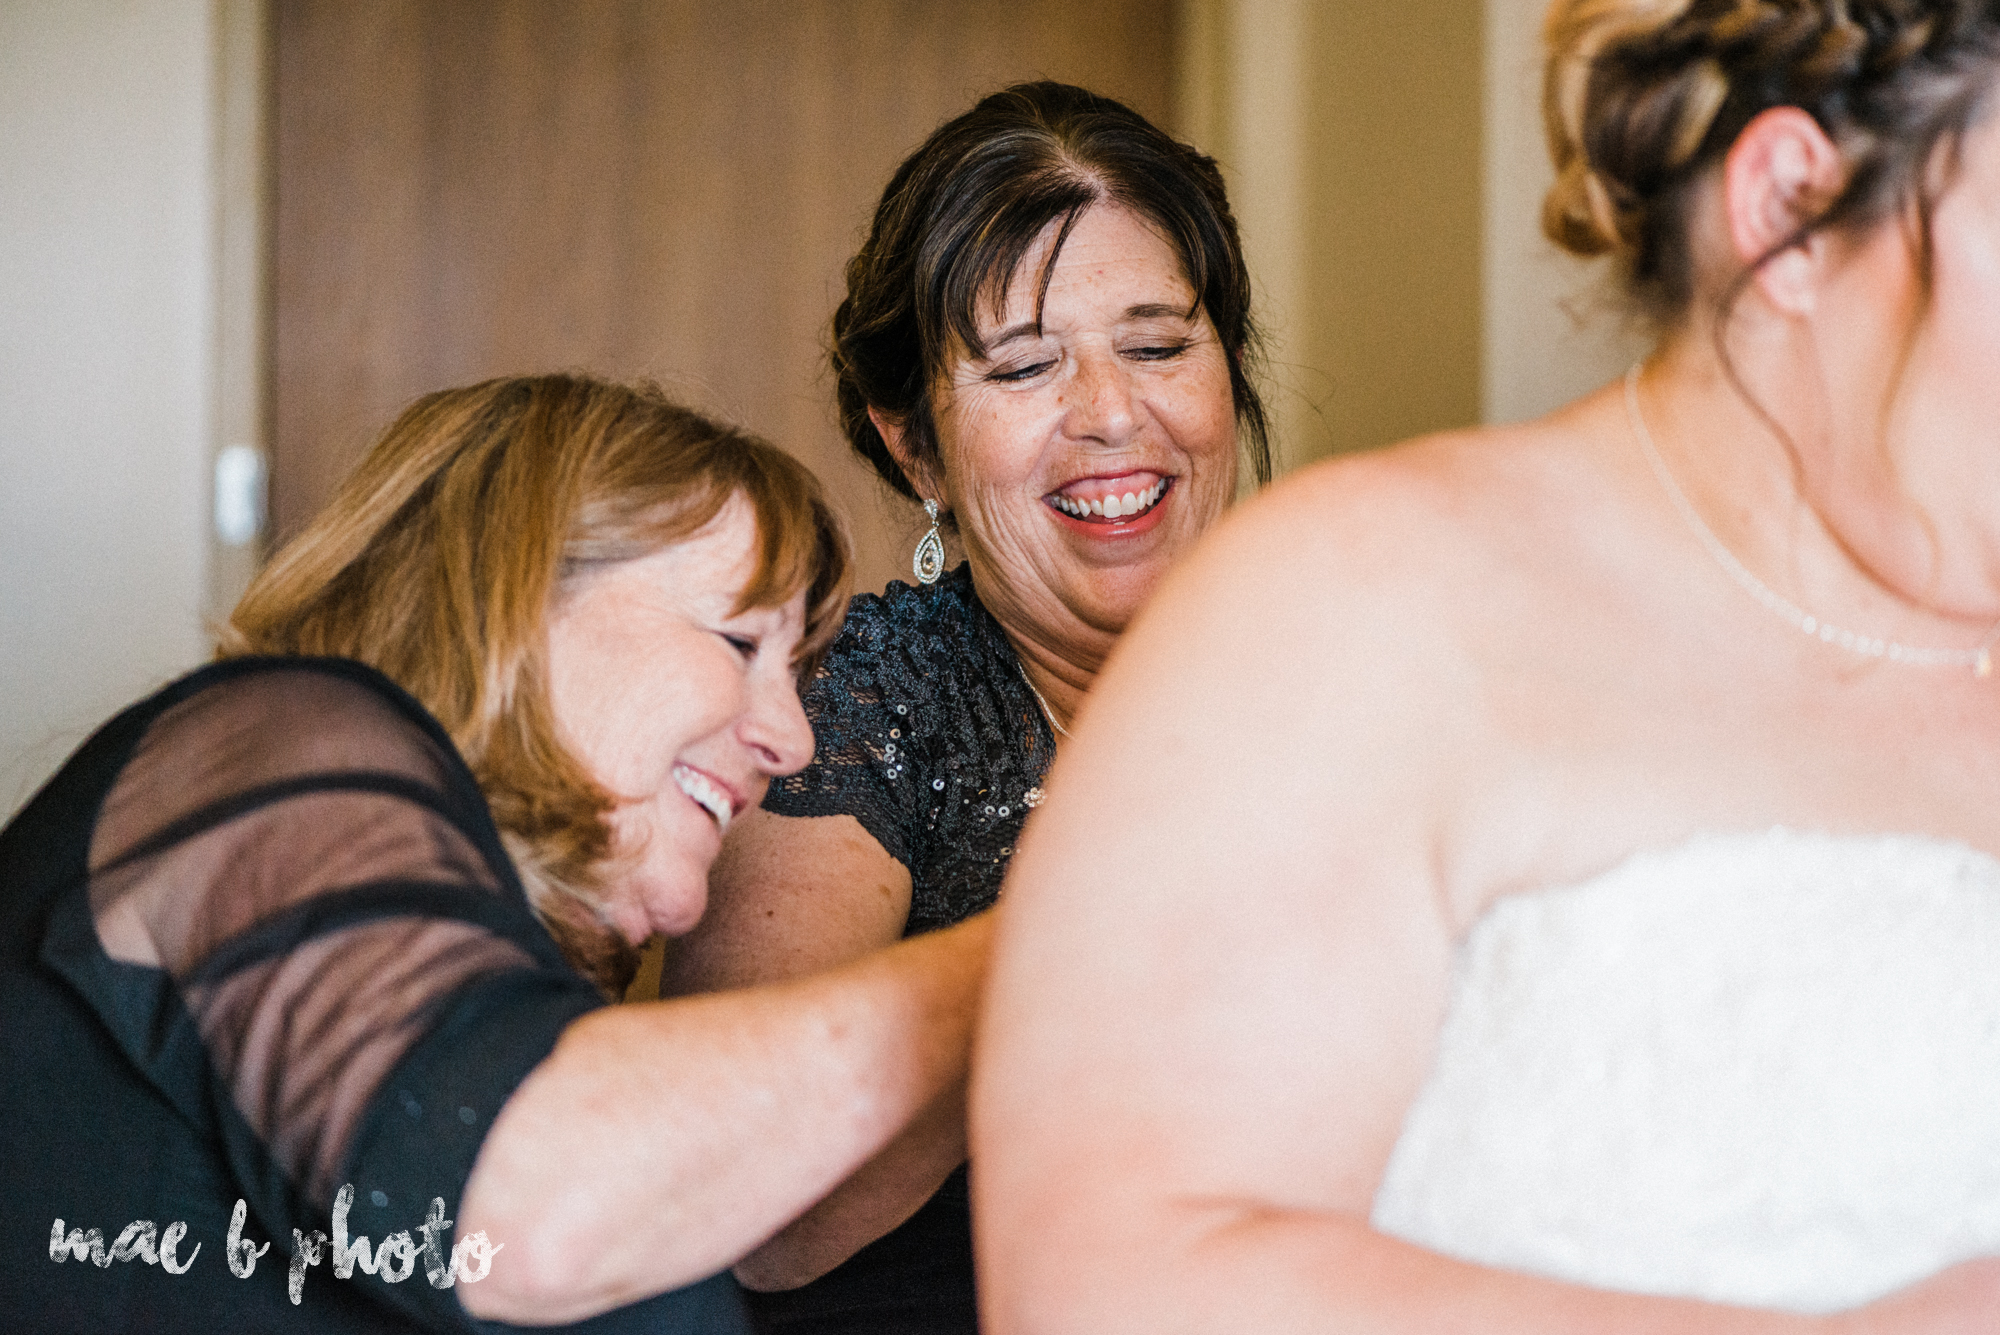 Kristina and ryan's personal vintage glam fall wedding at disalvo's station restaurant and the arnold palmer latrobe country club in latrobe, pa photographed by youngstown wedding photographer mae b photo-12.jpg